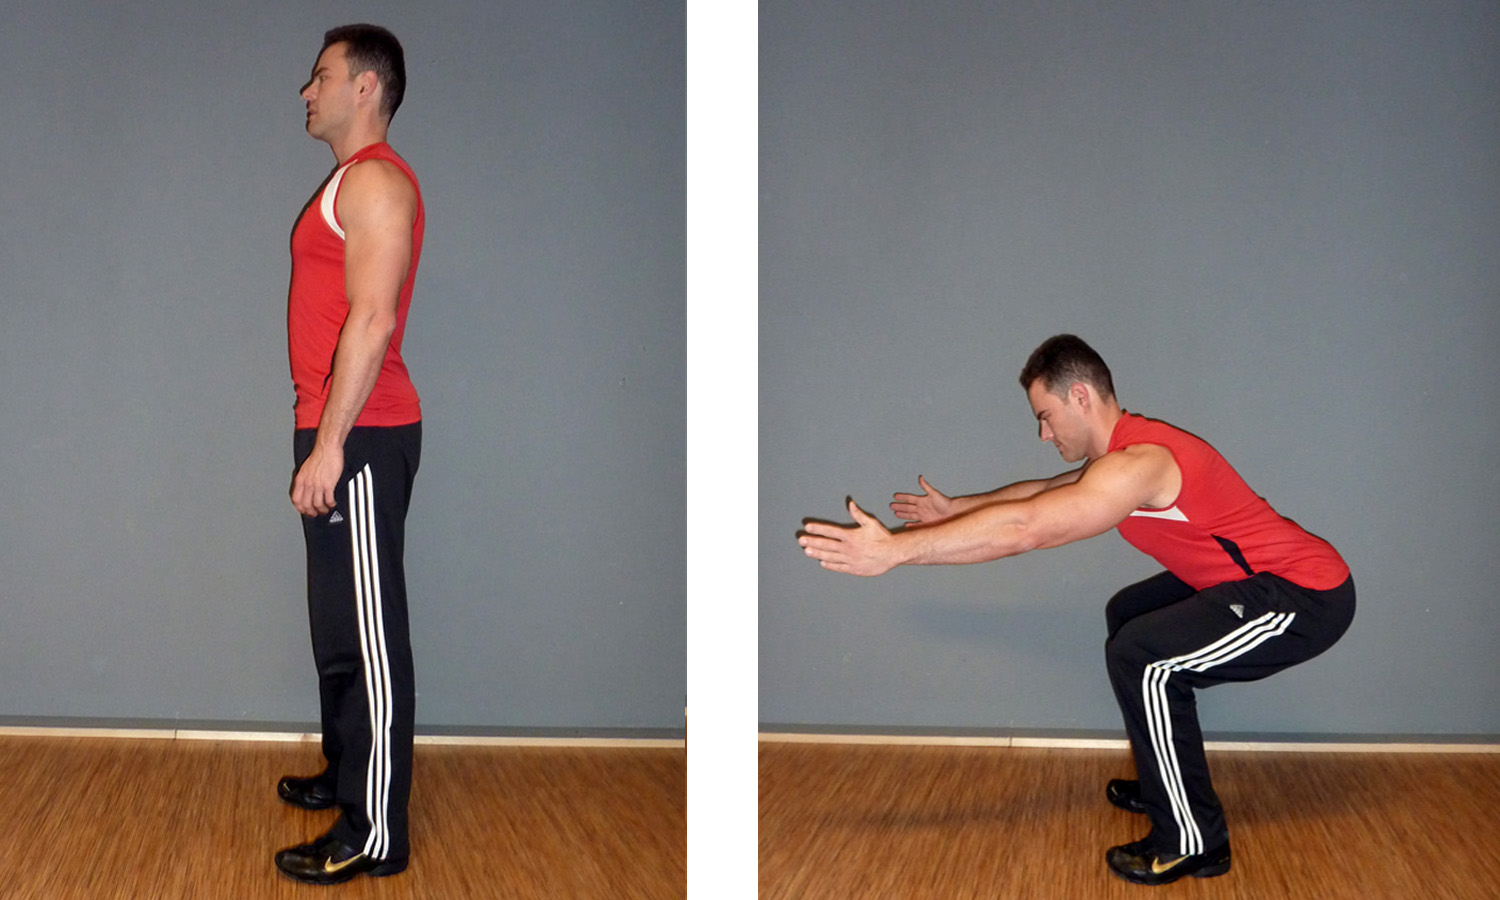 How to bodyweight squat